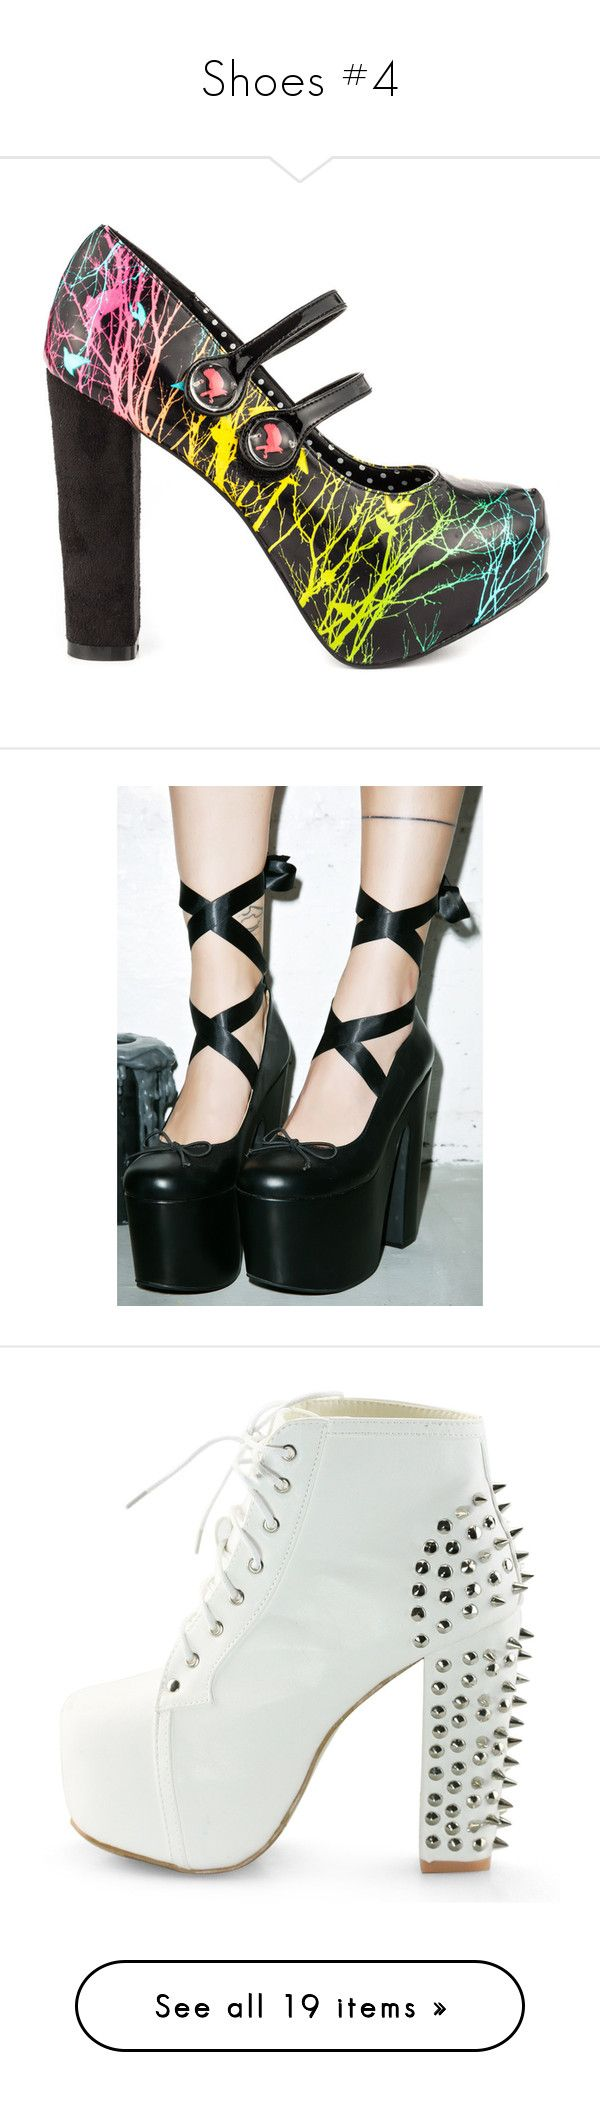 """""""Shoes #4"""" by headbangingunicorn ❤ liked on Polyvore featuring shoes, pumps, heels, high heel mary janes, mary jane shoes, blue mary jane pumps, mary jane pumps, multi-color pumps, ballerina pumps and heel pump"""